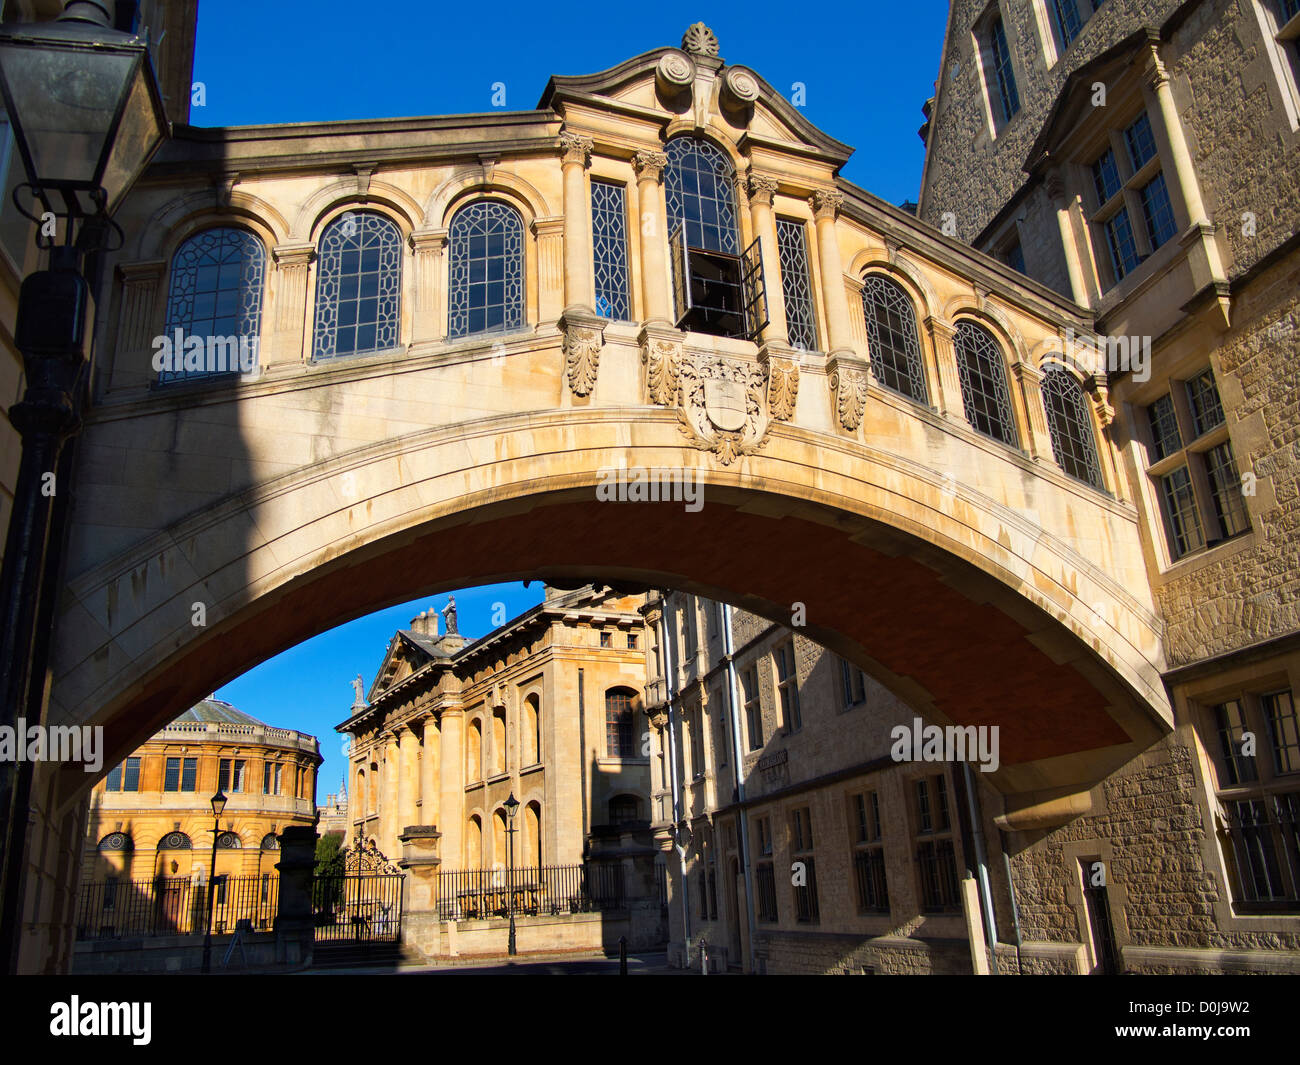 The Bridge of Sighs at Hertford College in Oxford. - Stock Image